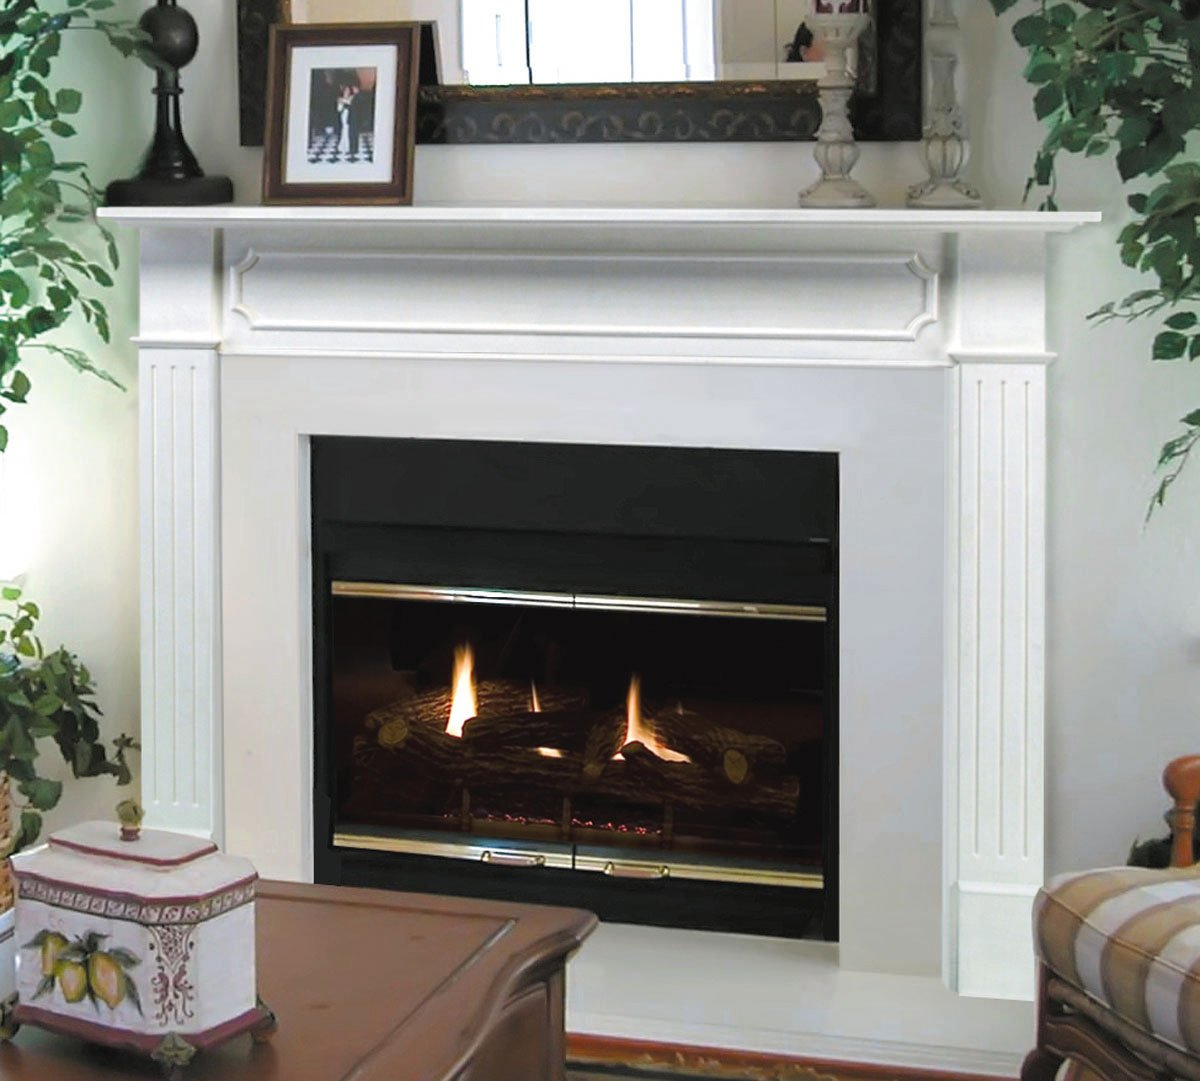 fireplace mantel kits amazon com rh amazon com  wooden fireplace mantel kits